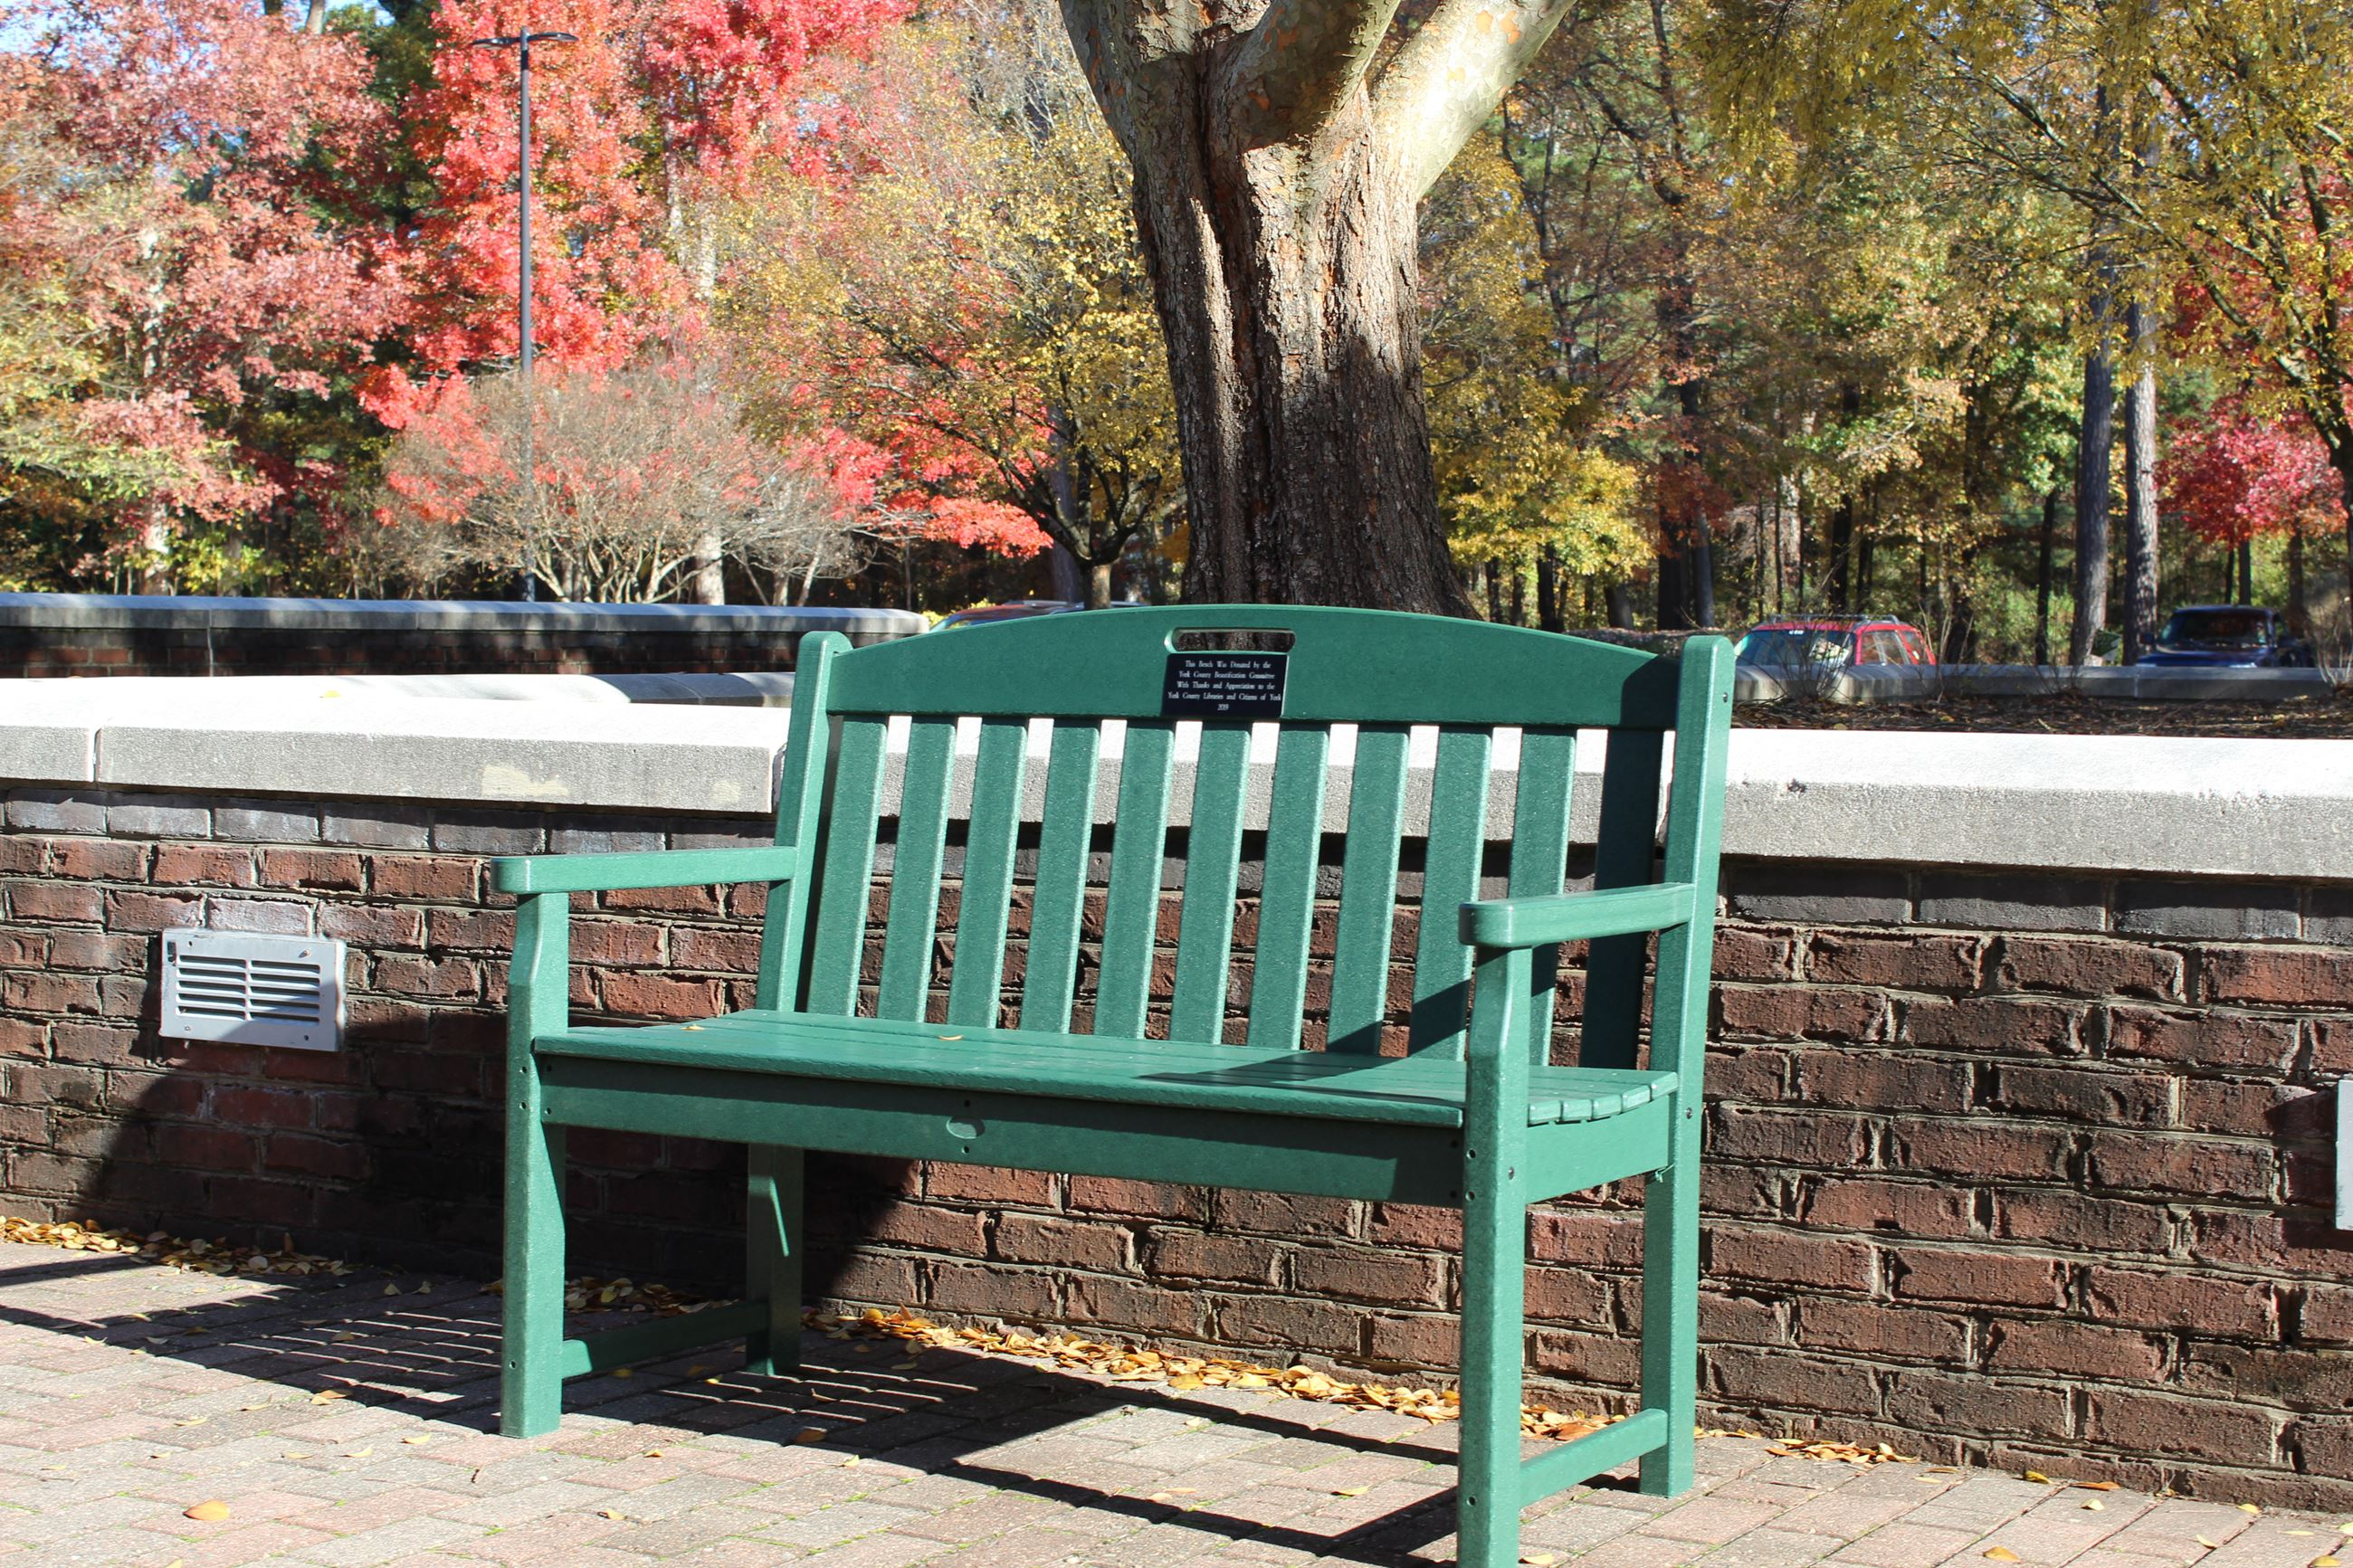 This is an image of a Trex Bench at the Tabb Library